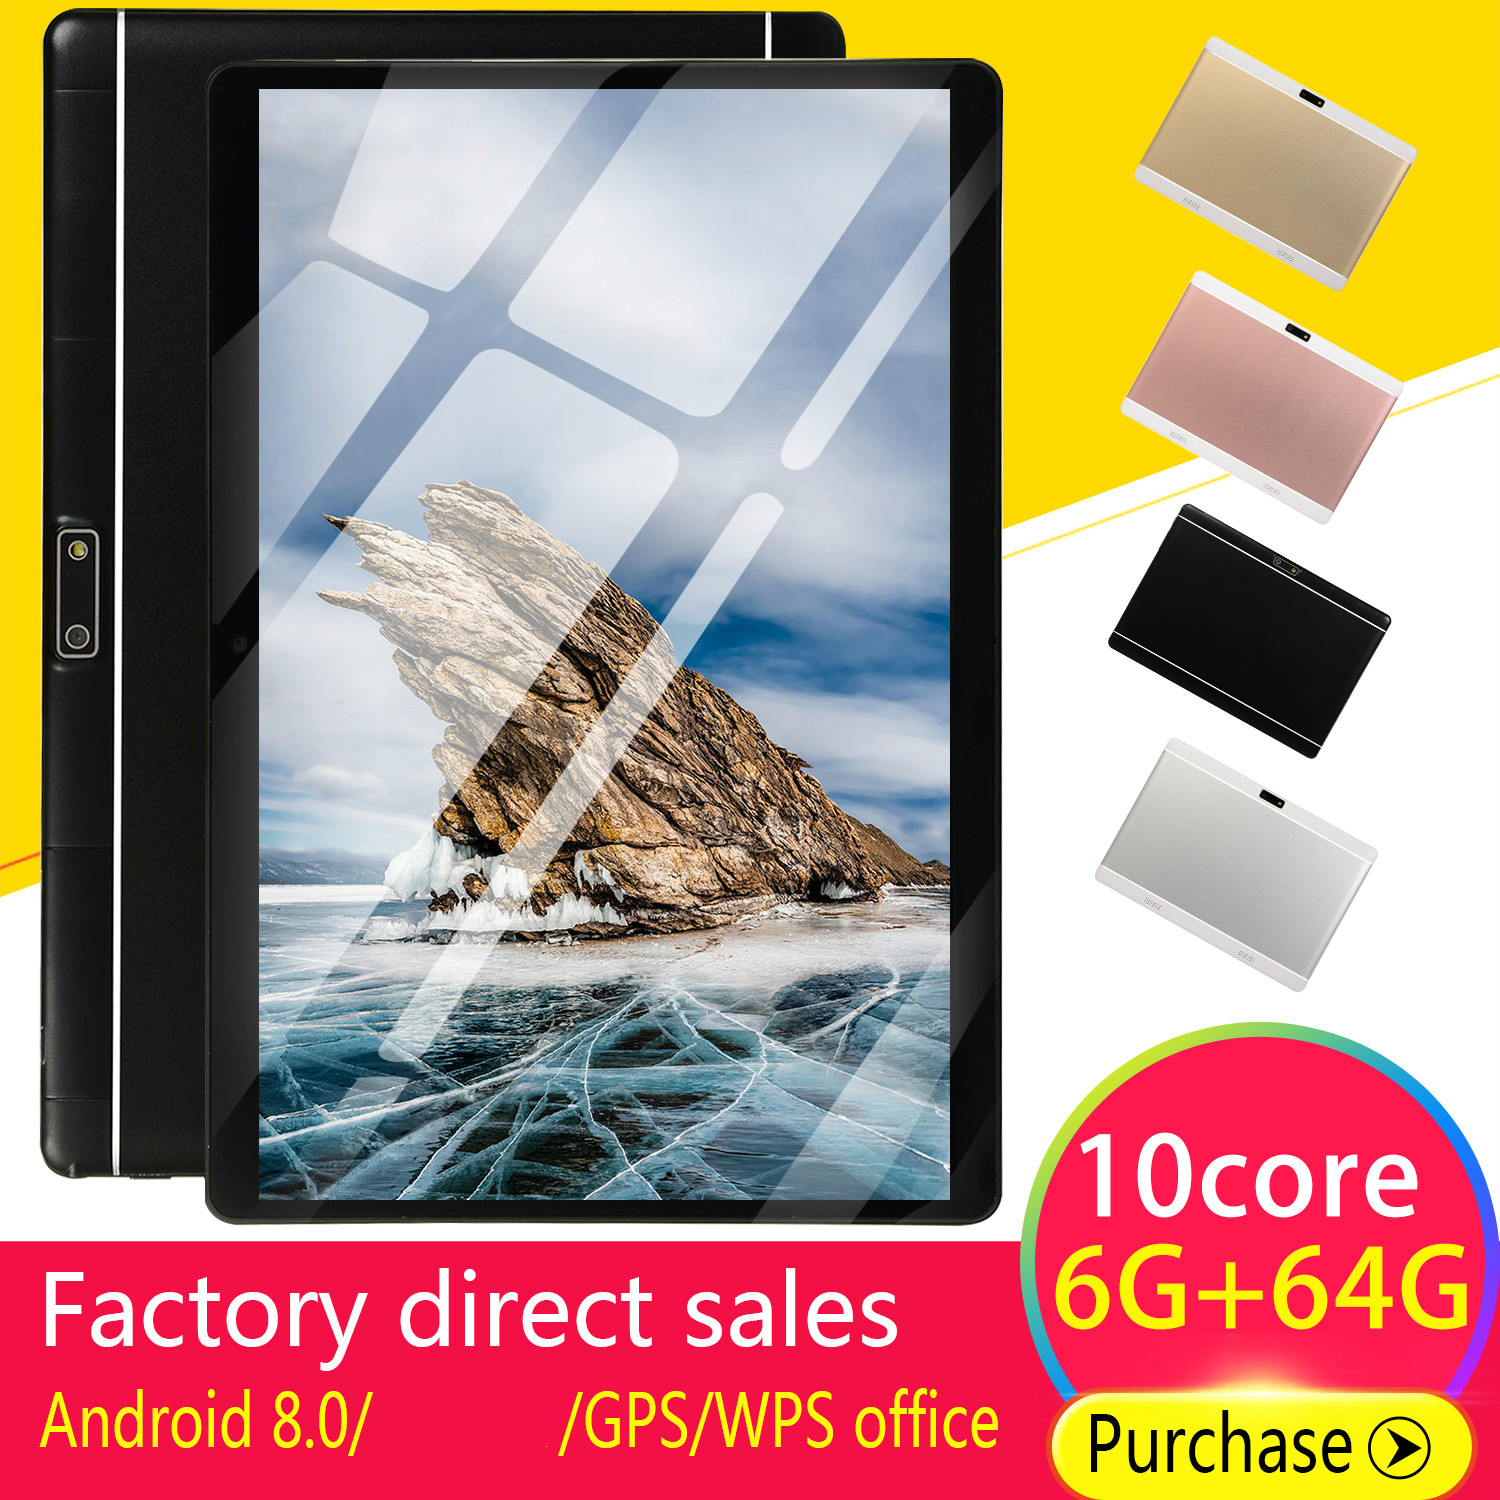 2020 WiFi Tablet PC 10 Inch Ten Core 4G Network Android 8.0 Arge Screen Dual SIM Dual Camera